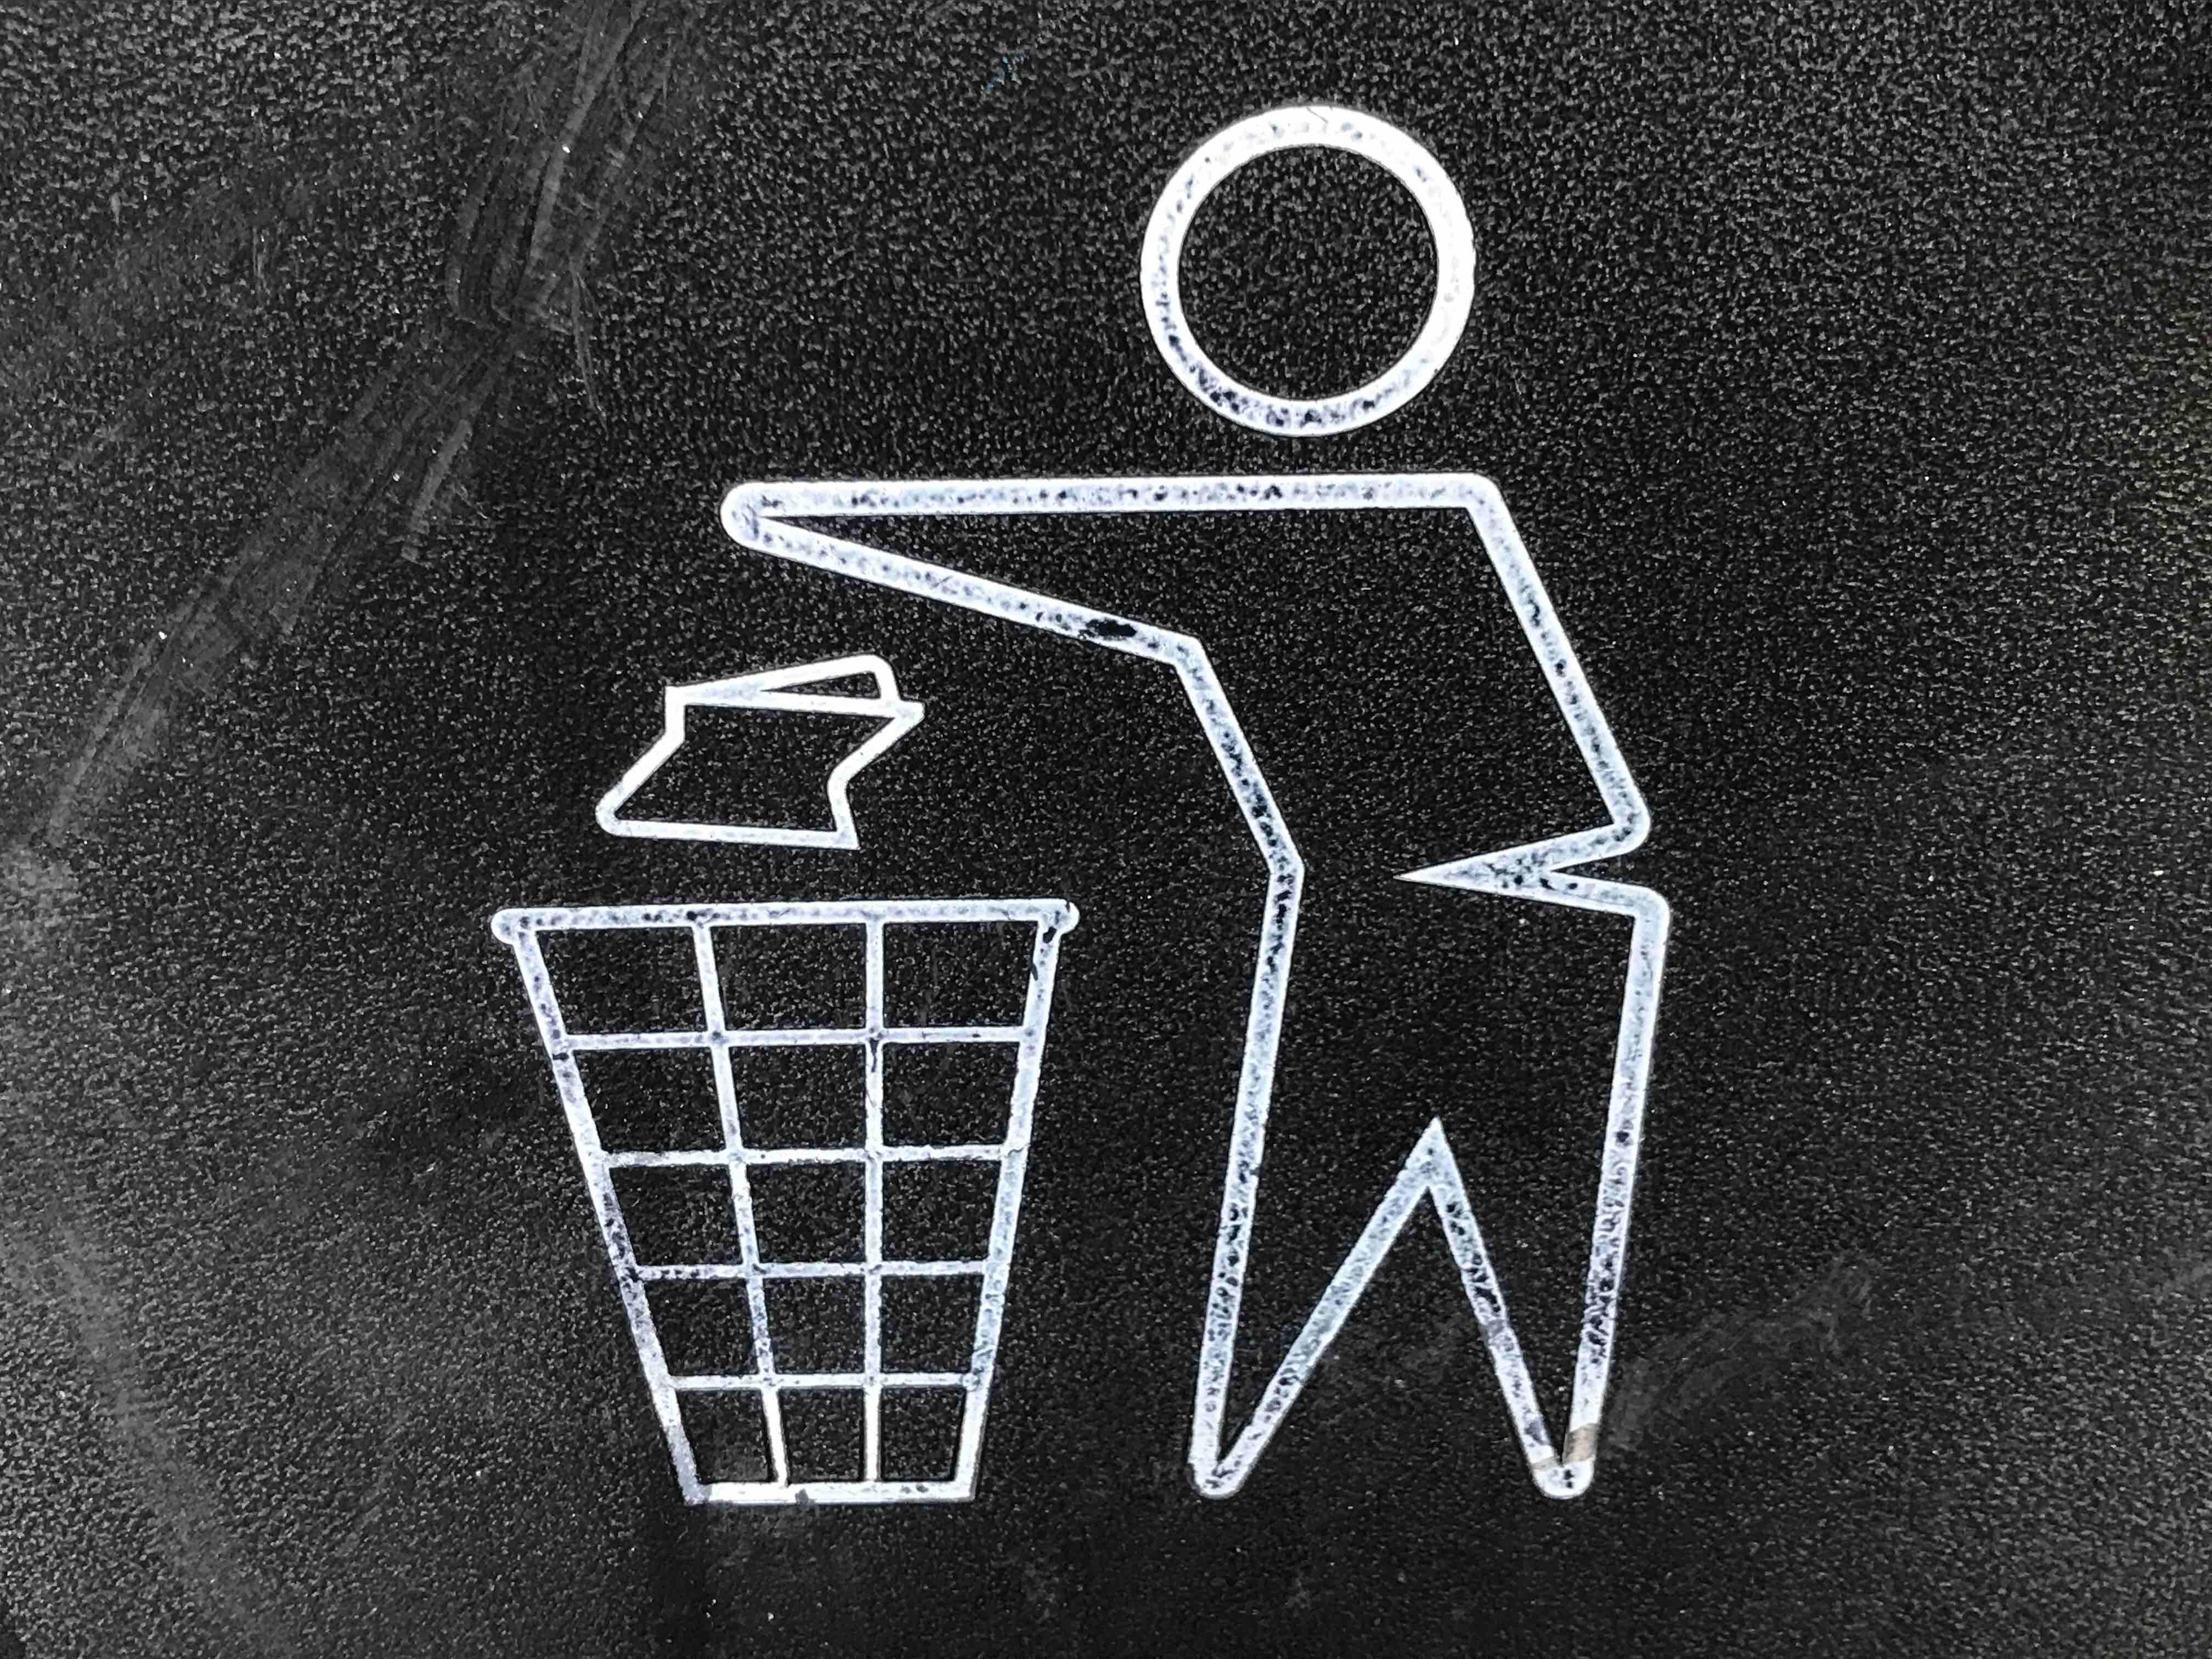 Chalk drawing of person disposing waste into trash bin